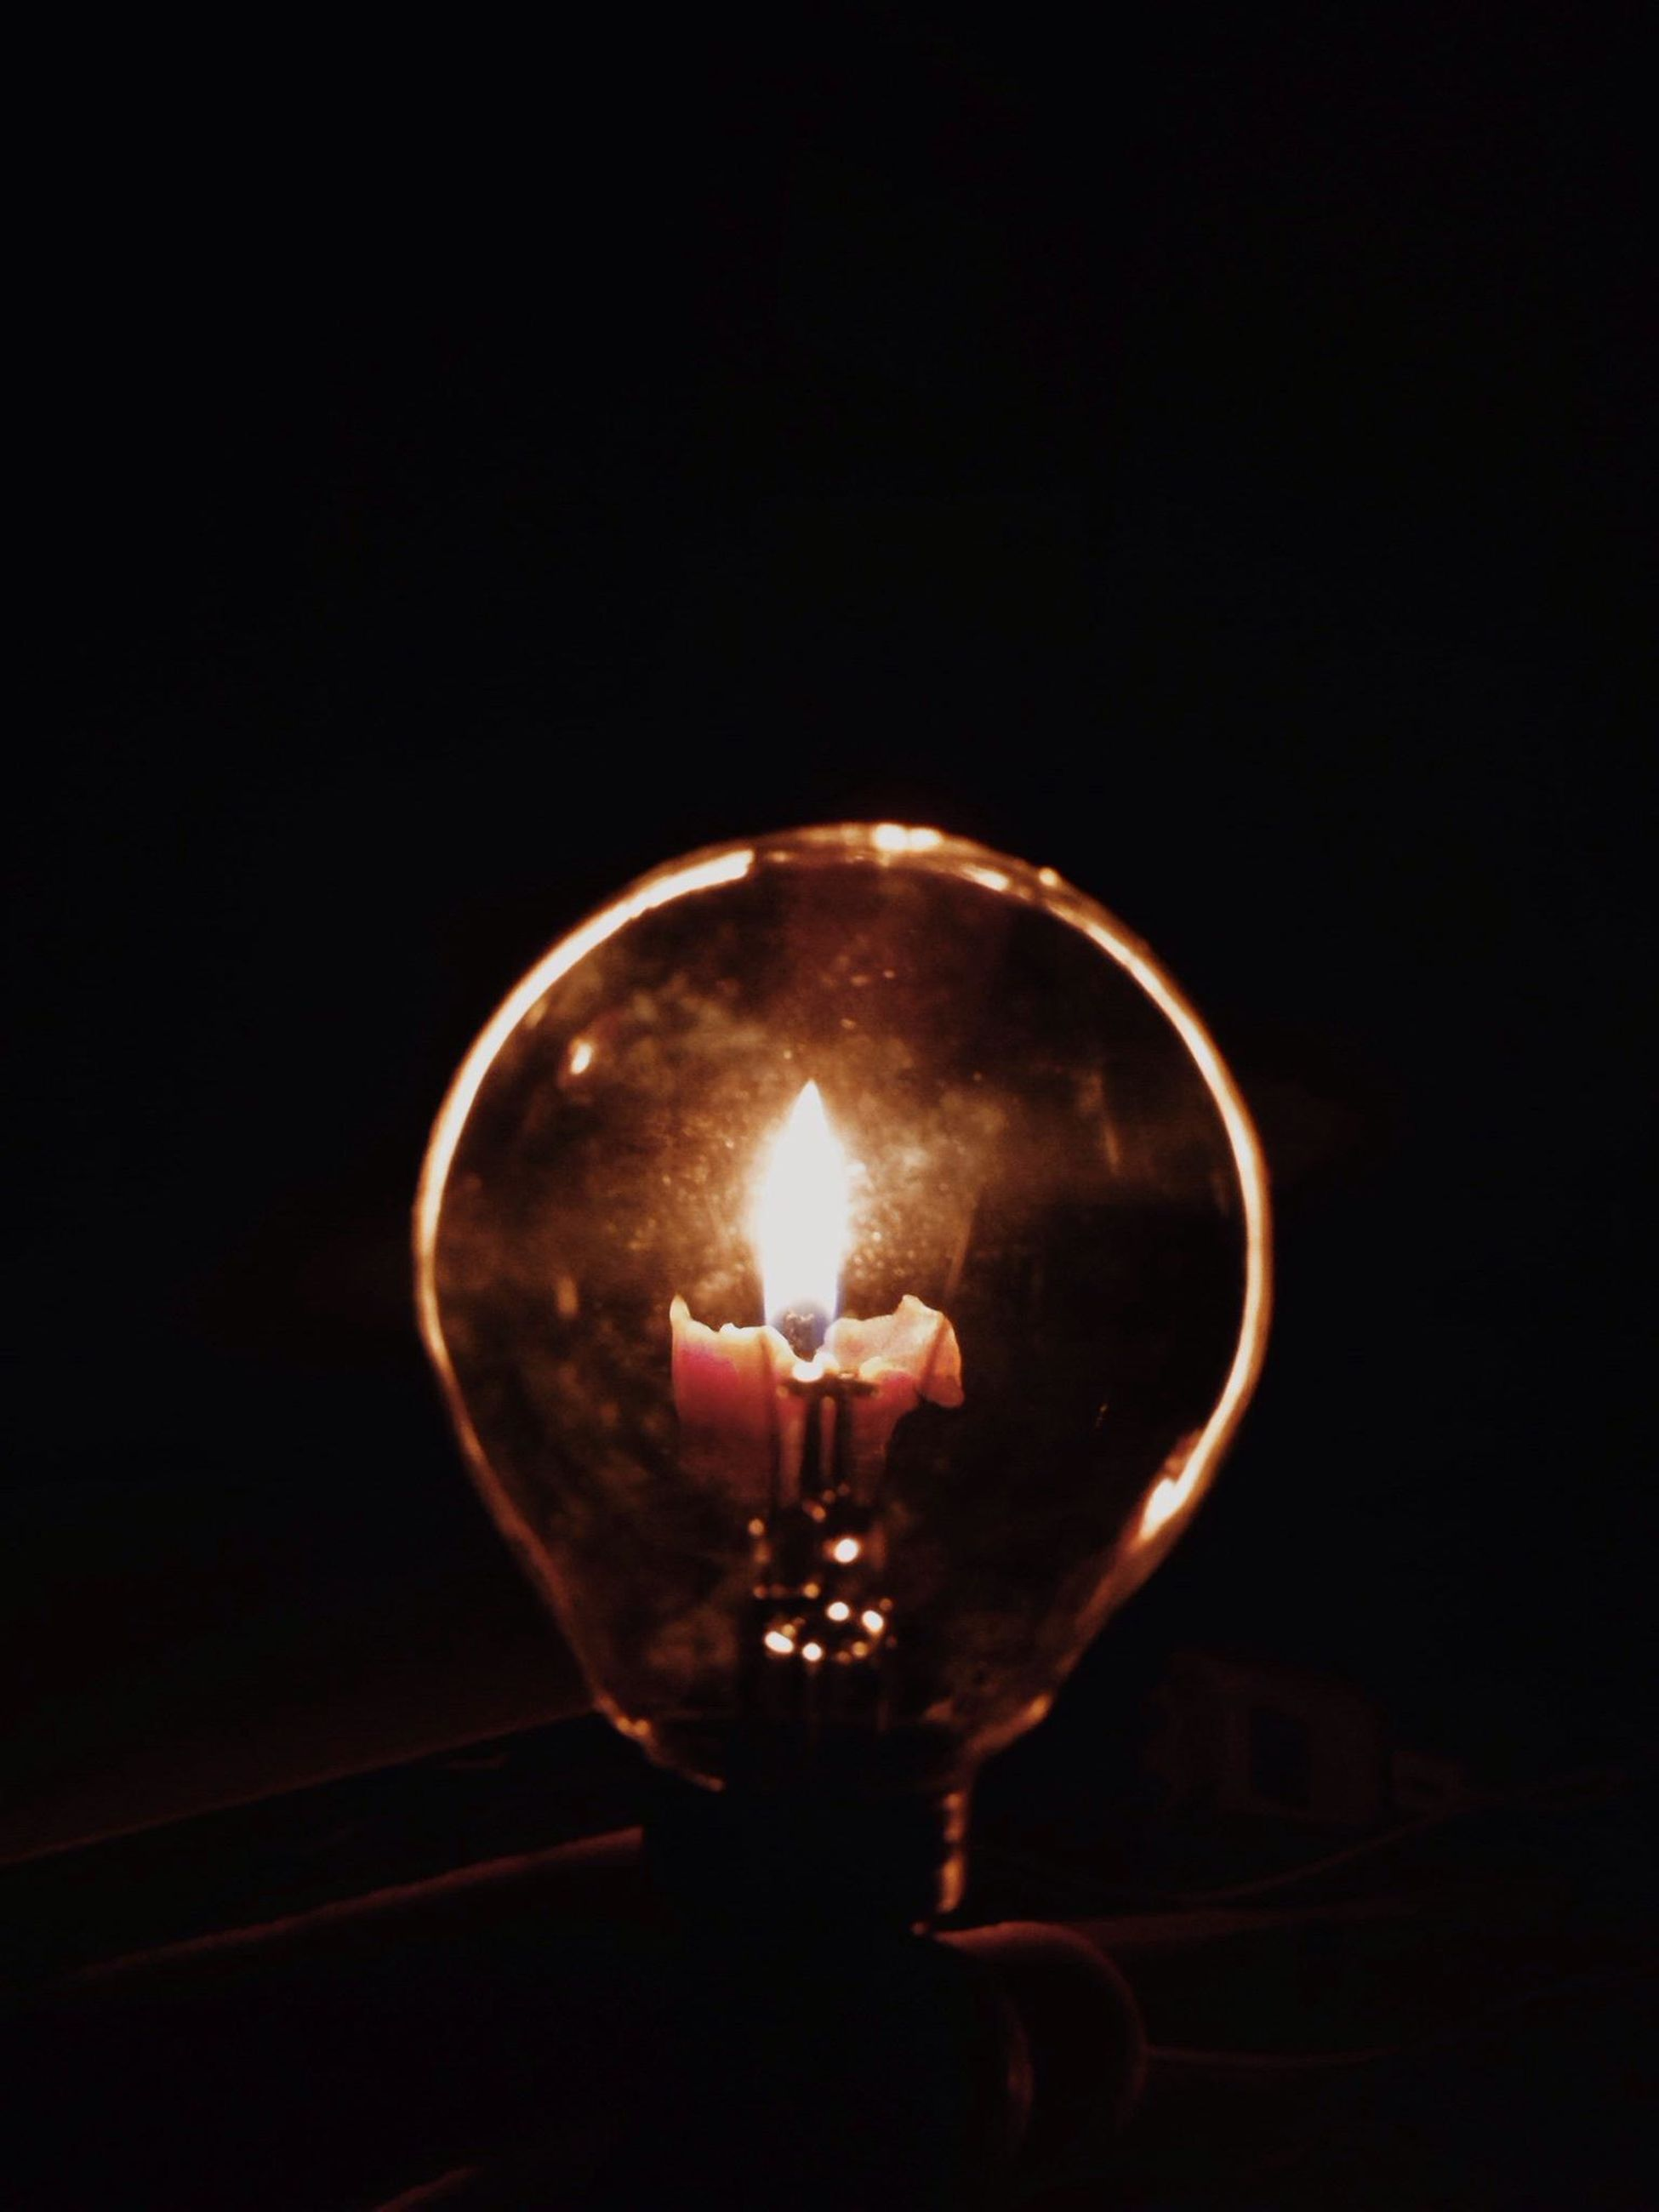 illuminated, indoors, lighting equipment, light bulb, glowing, electricity, lit, burning, close-up, glass - material, flame, electric light, dark, copy space, transparent, night, fire - natural phenomenon, darkroom, candle, heat - temperature